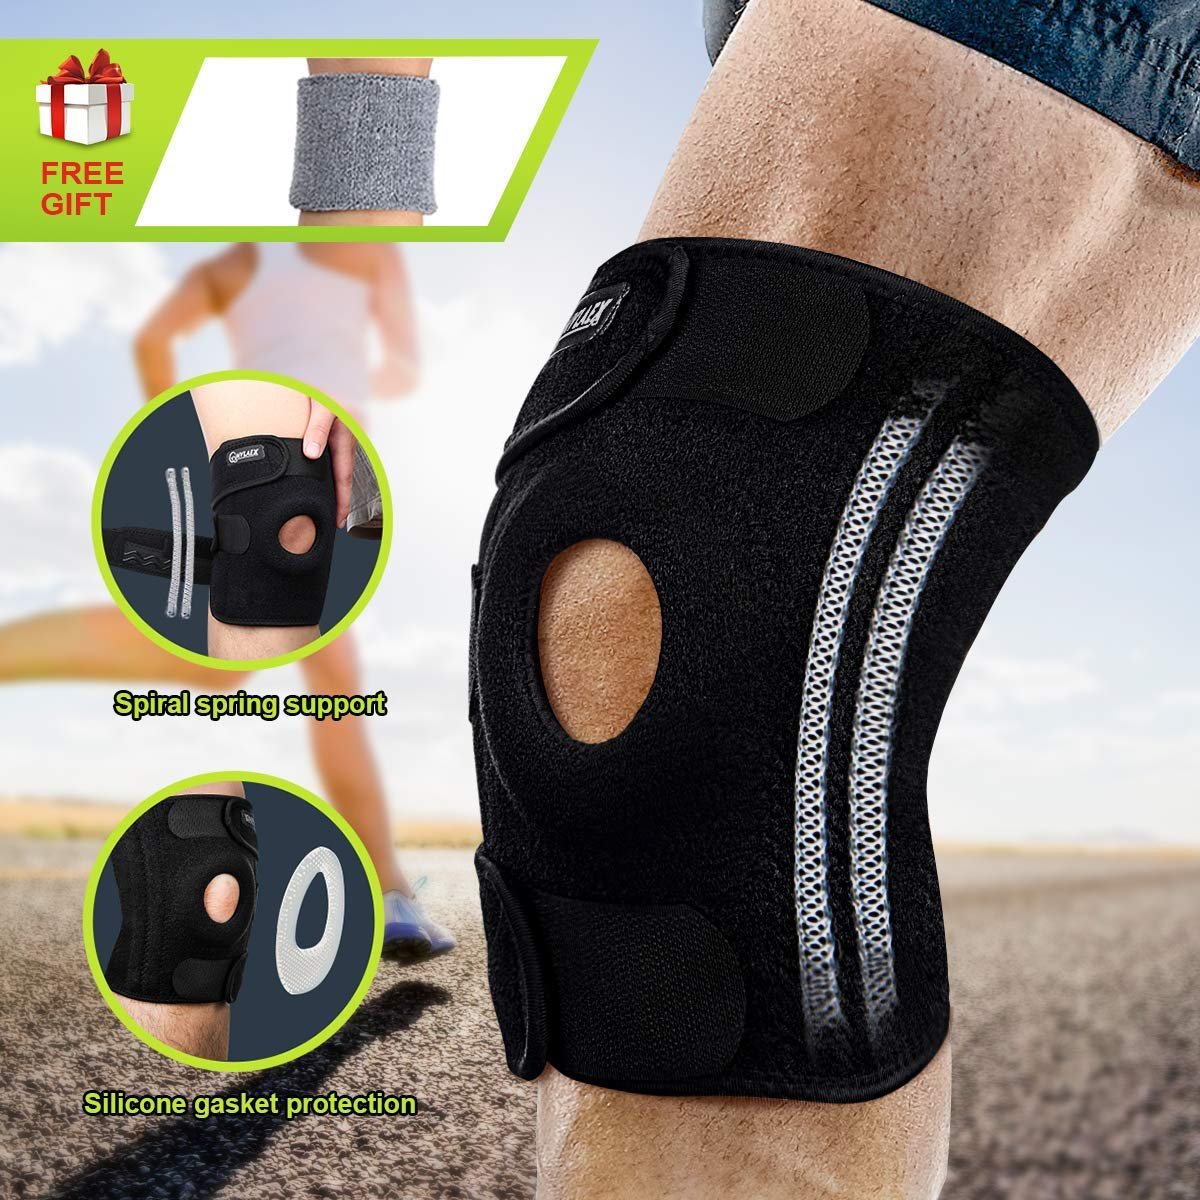 8a6de5db66 Get Quotations · Knee Brace, Compression Knee Sleeve with Strap & 4  Flexible Spring Stabilizers for Best Support